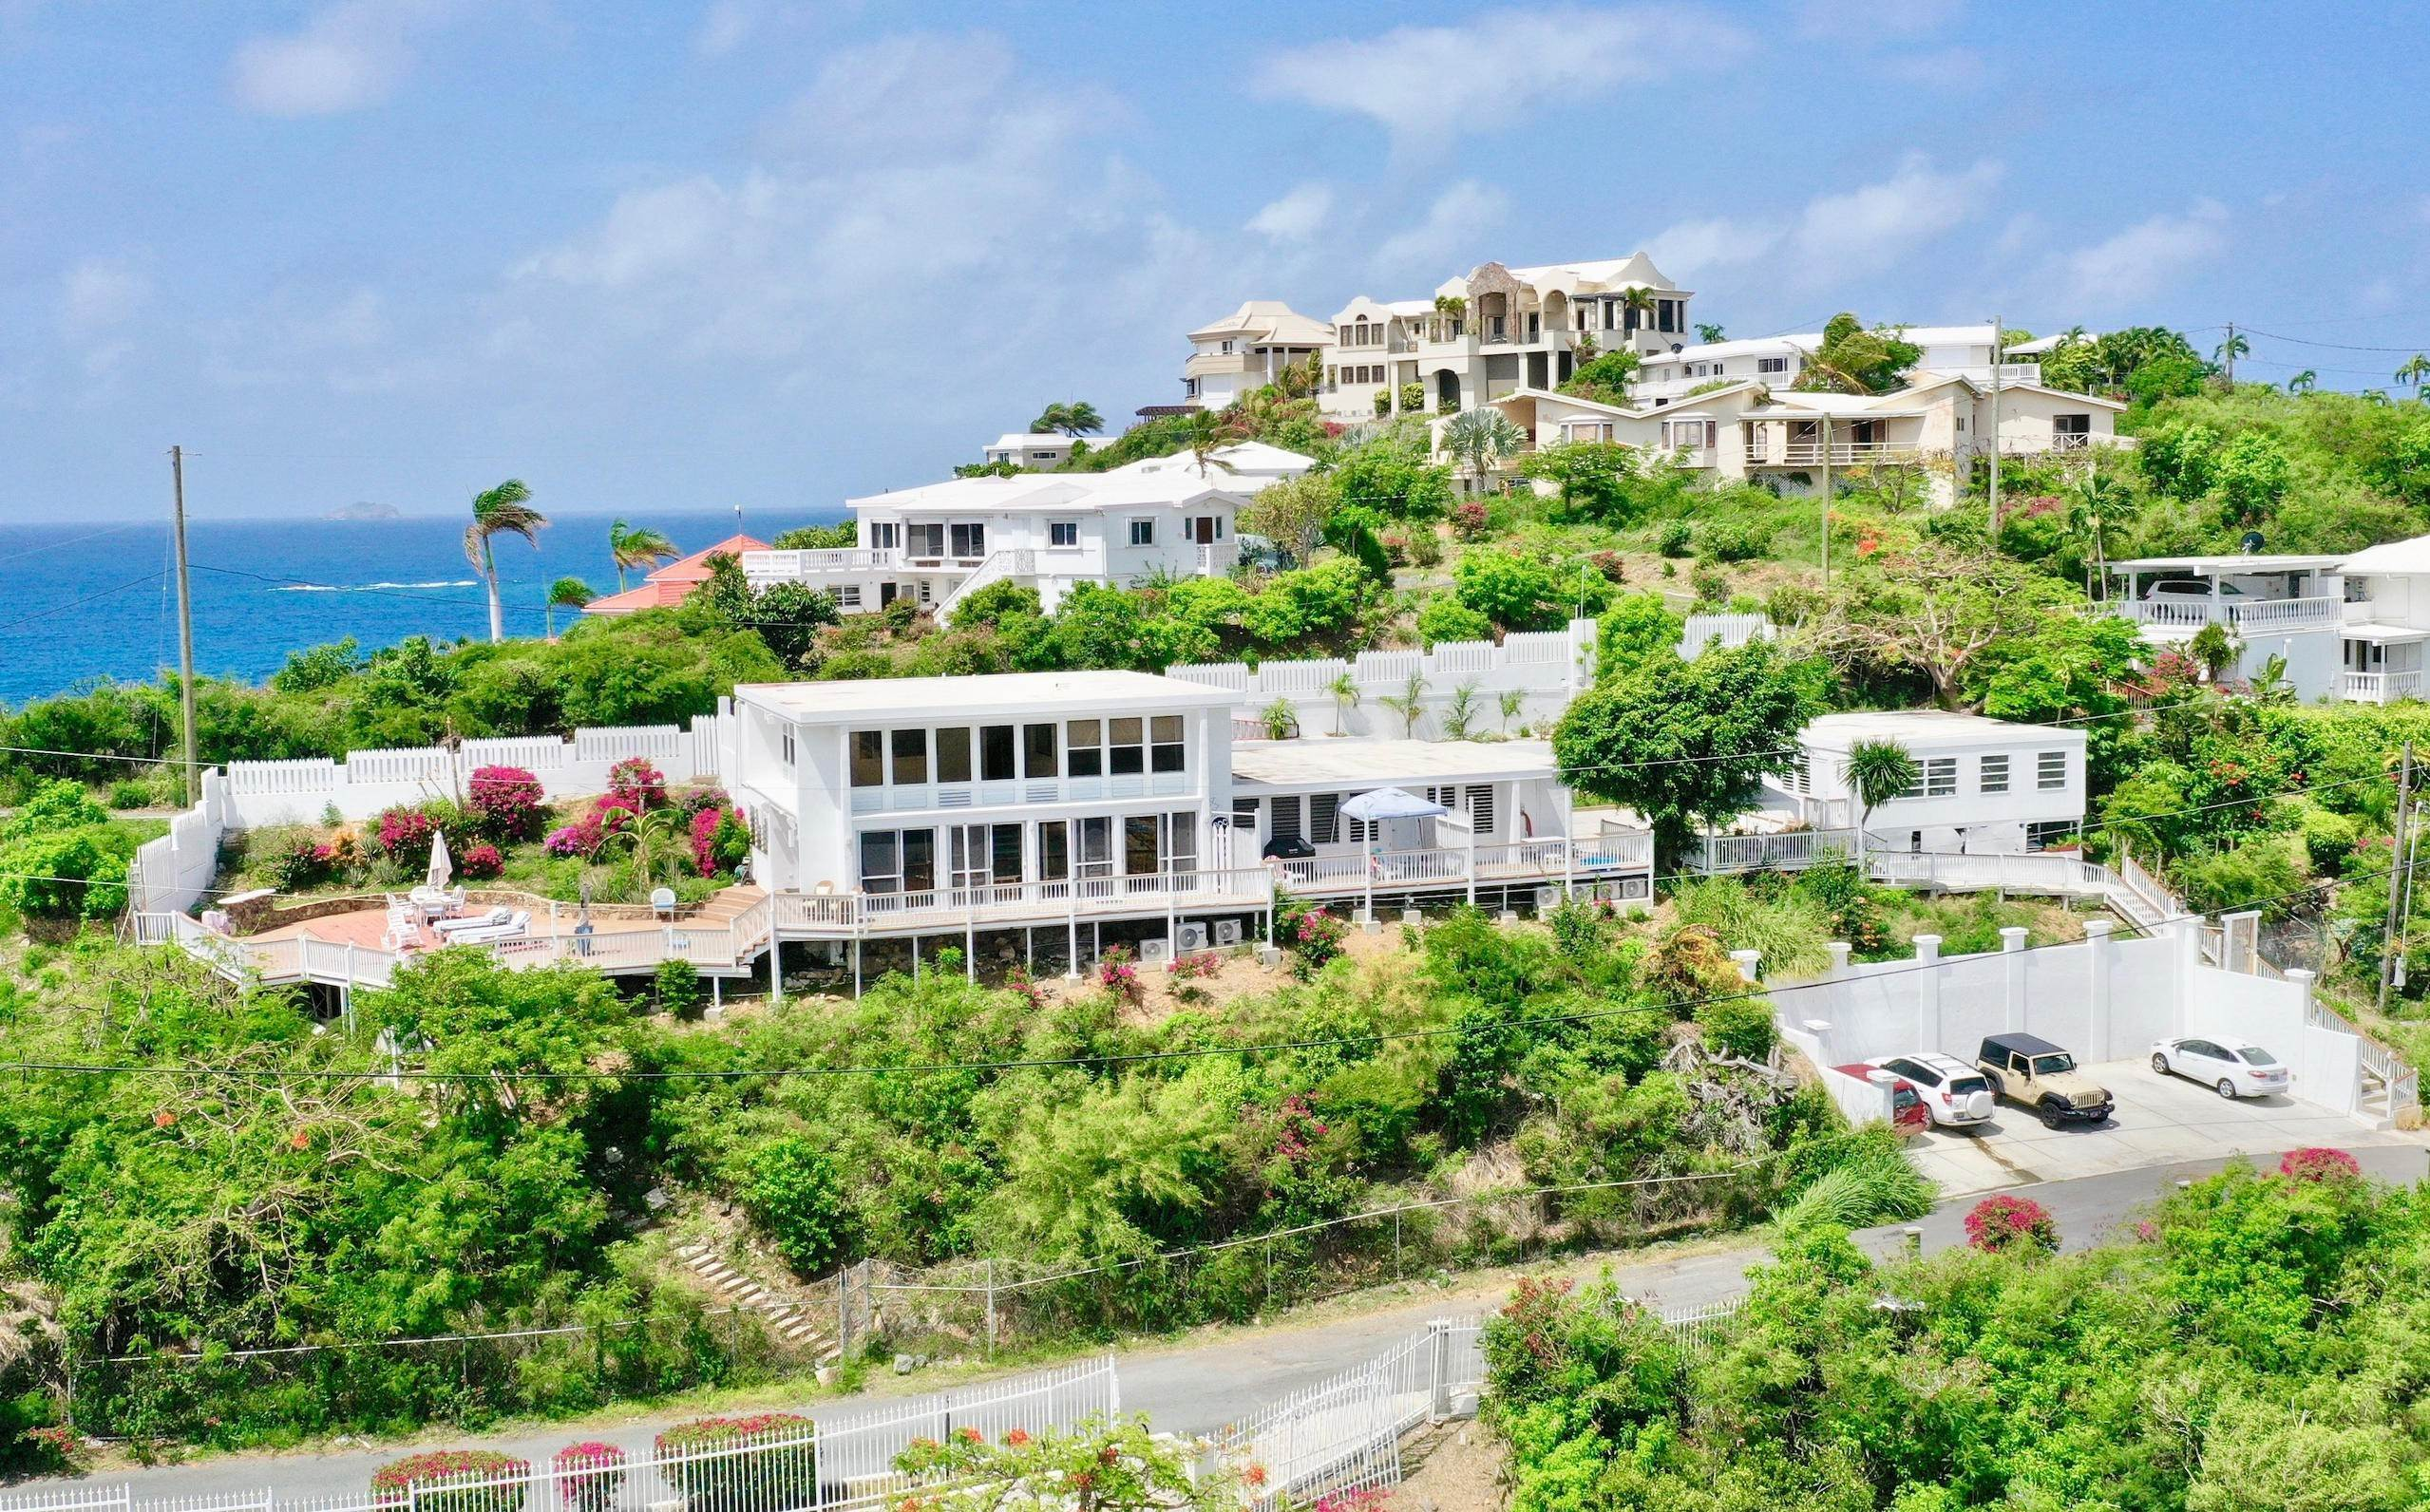 Multi-Family Homes for Sale at 8-20 Nazareth RH St Thomas, Virgin Islands 00802 United States Virgin Islands